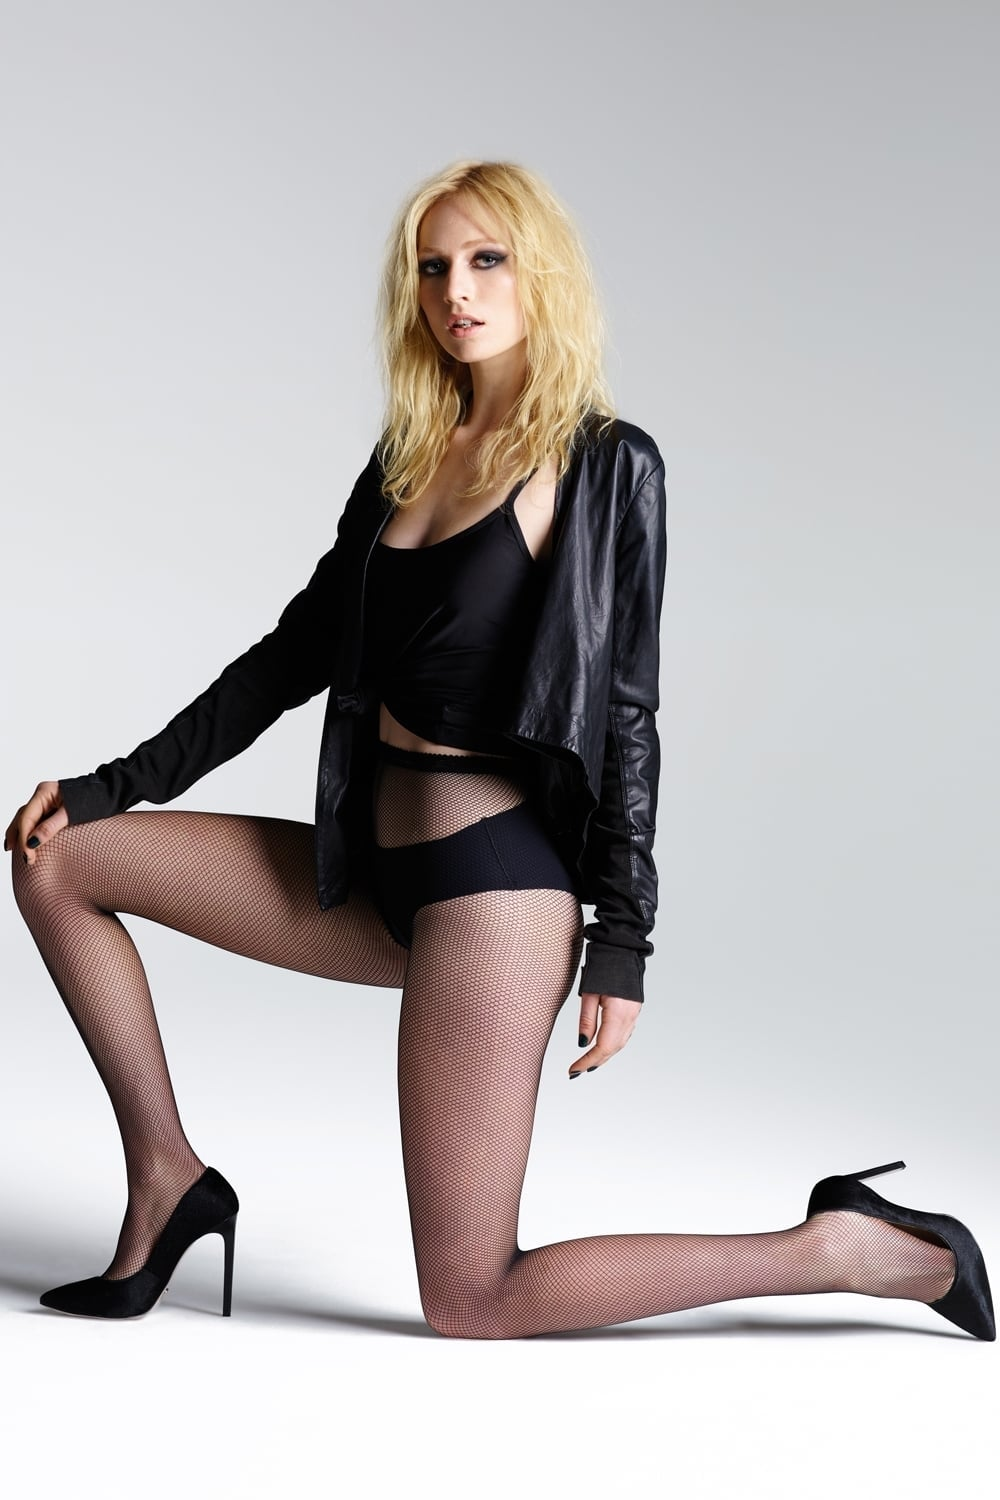 51c38208a3198 Vintage Legs Micronet Tights by Jonathan Aston